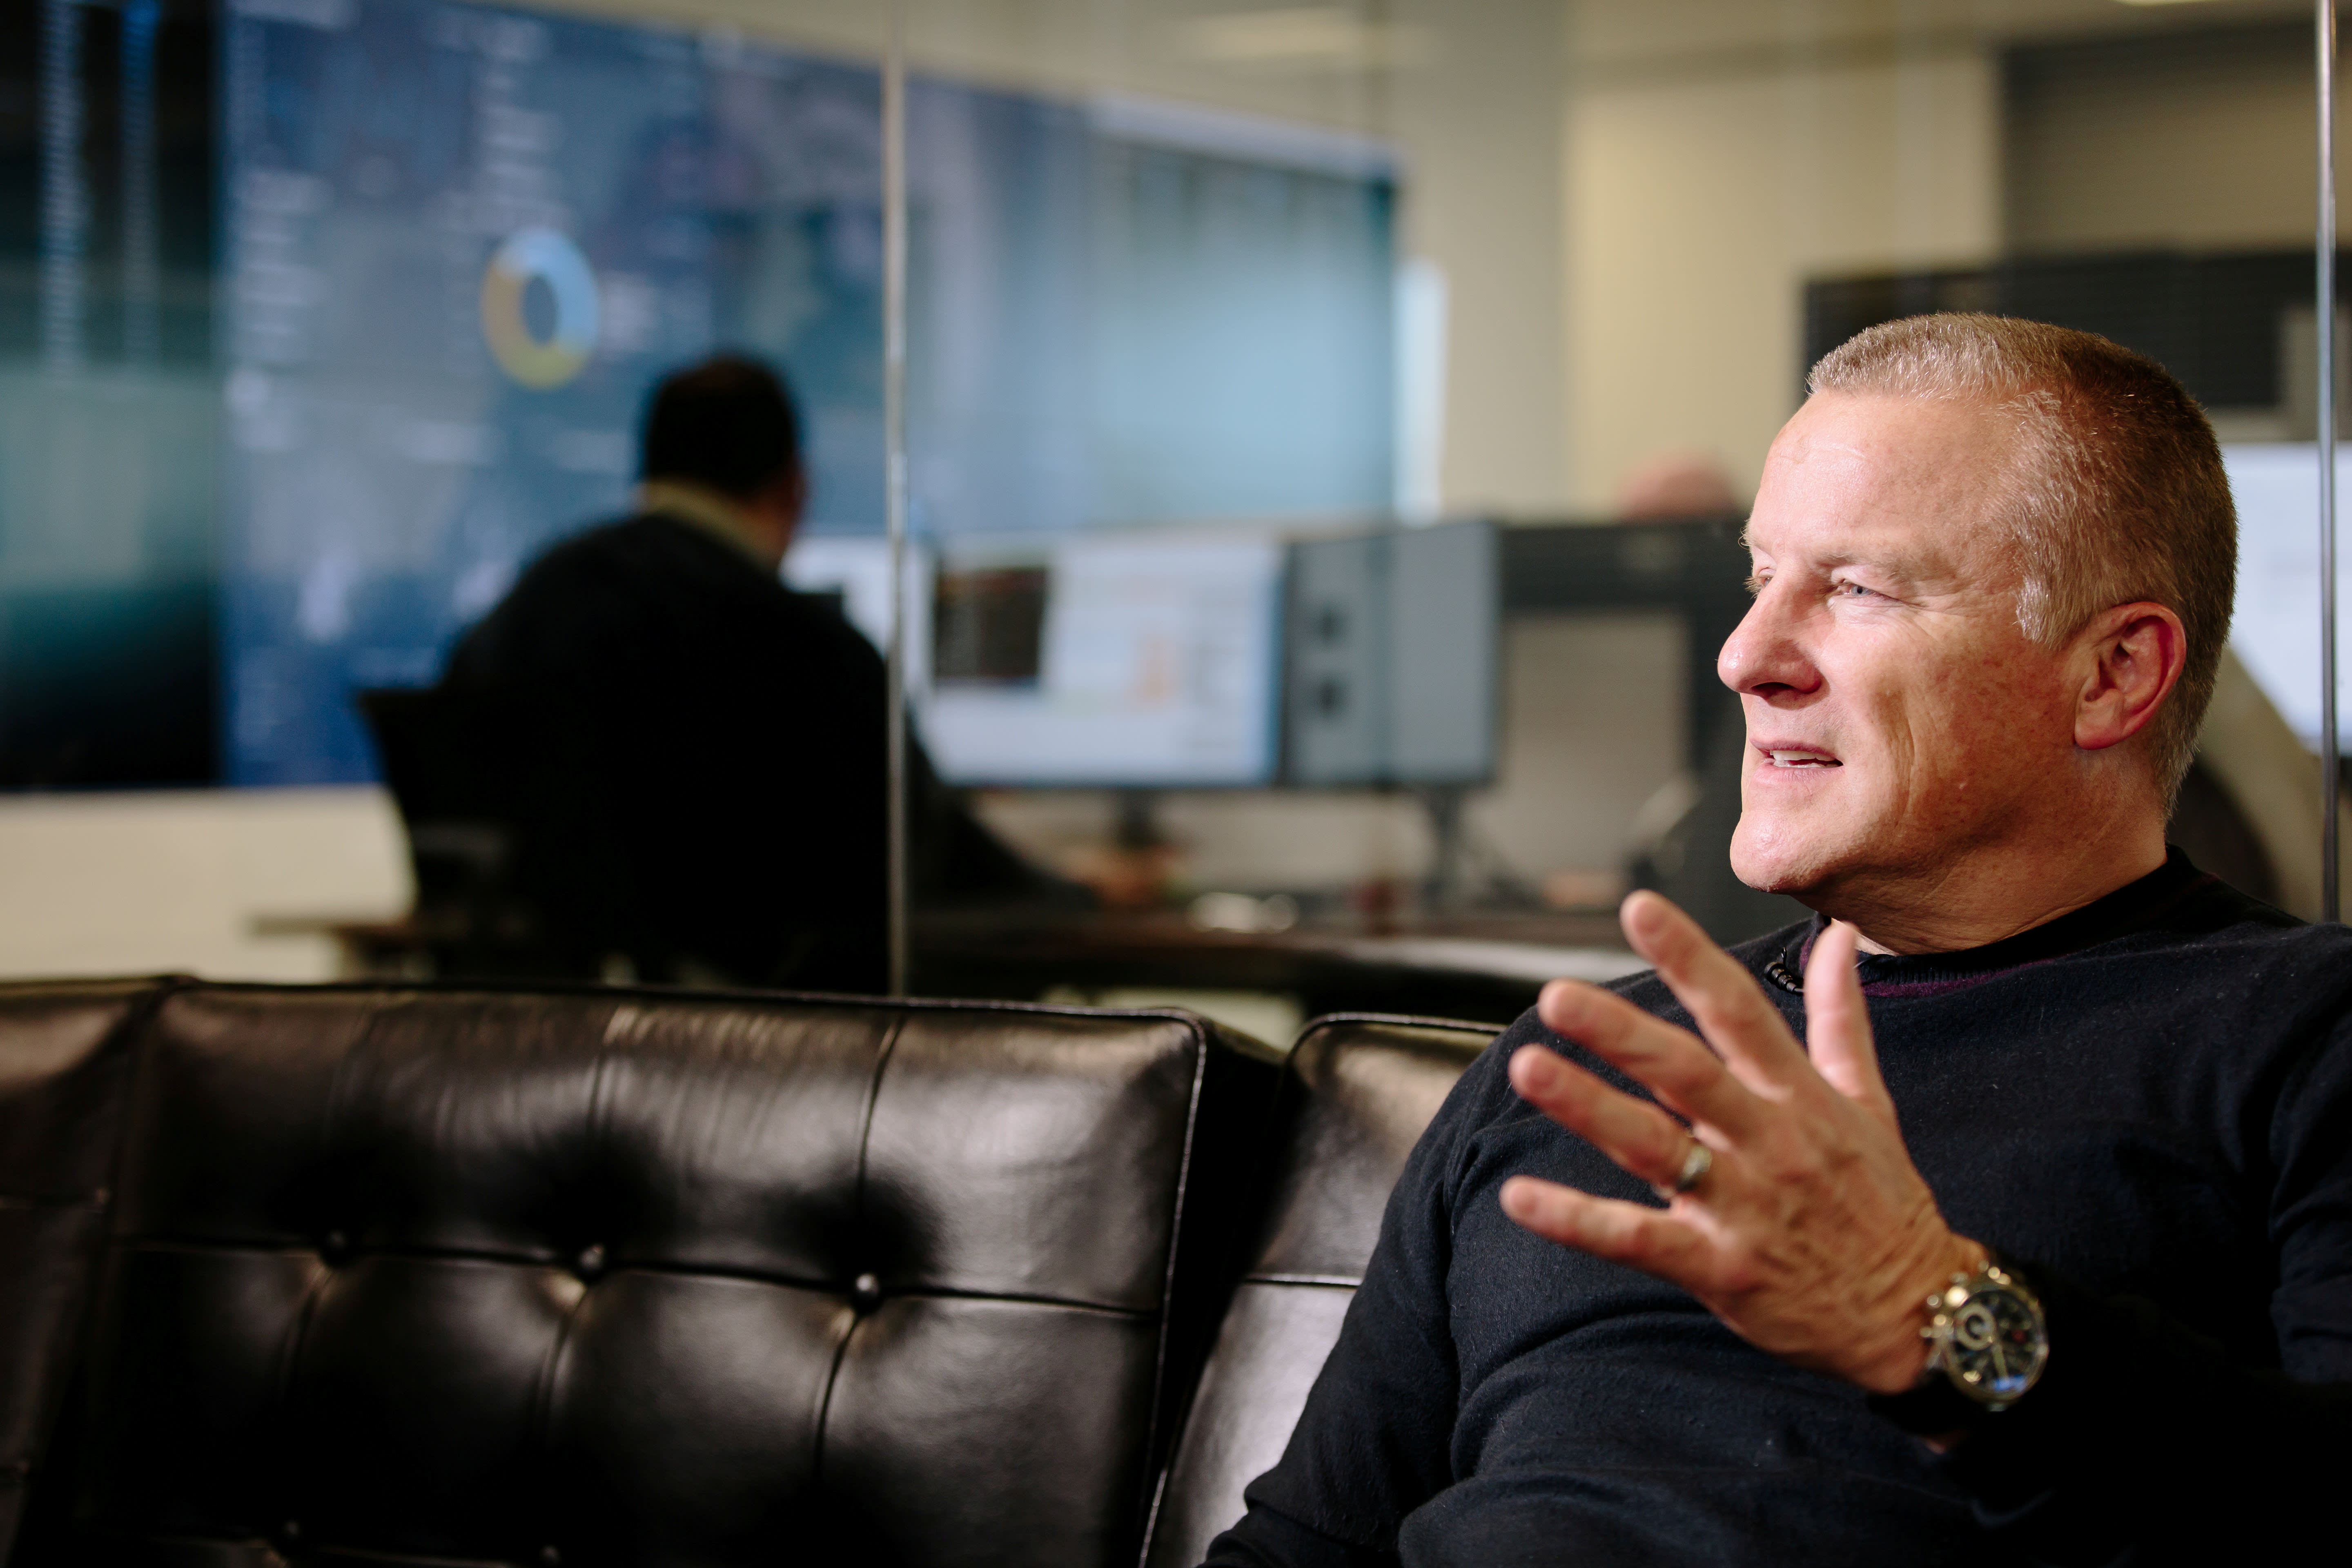 FCA 'did not act' on Woodford concerns